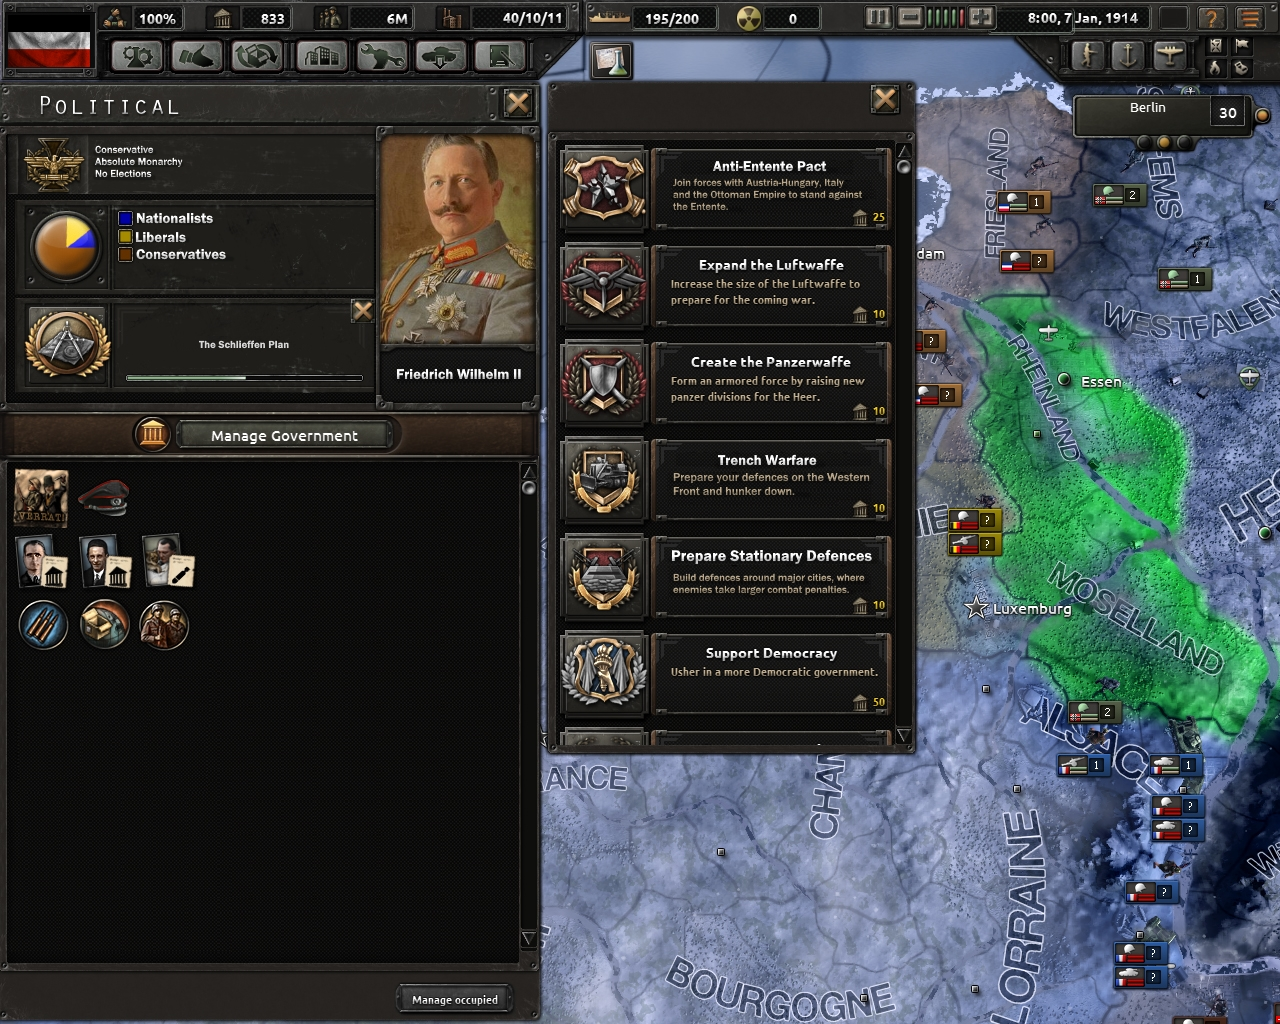 Hearts of iron 4 great war mod download | Hearts of Iron IV